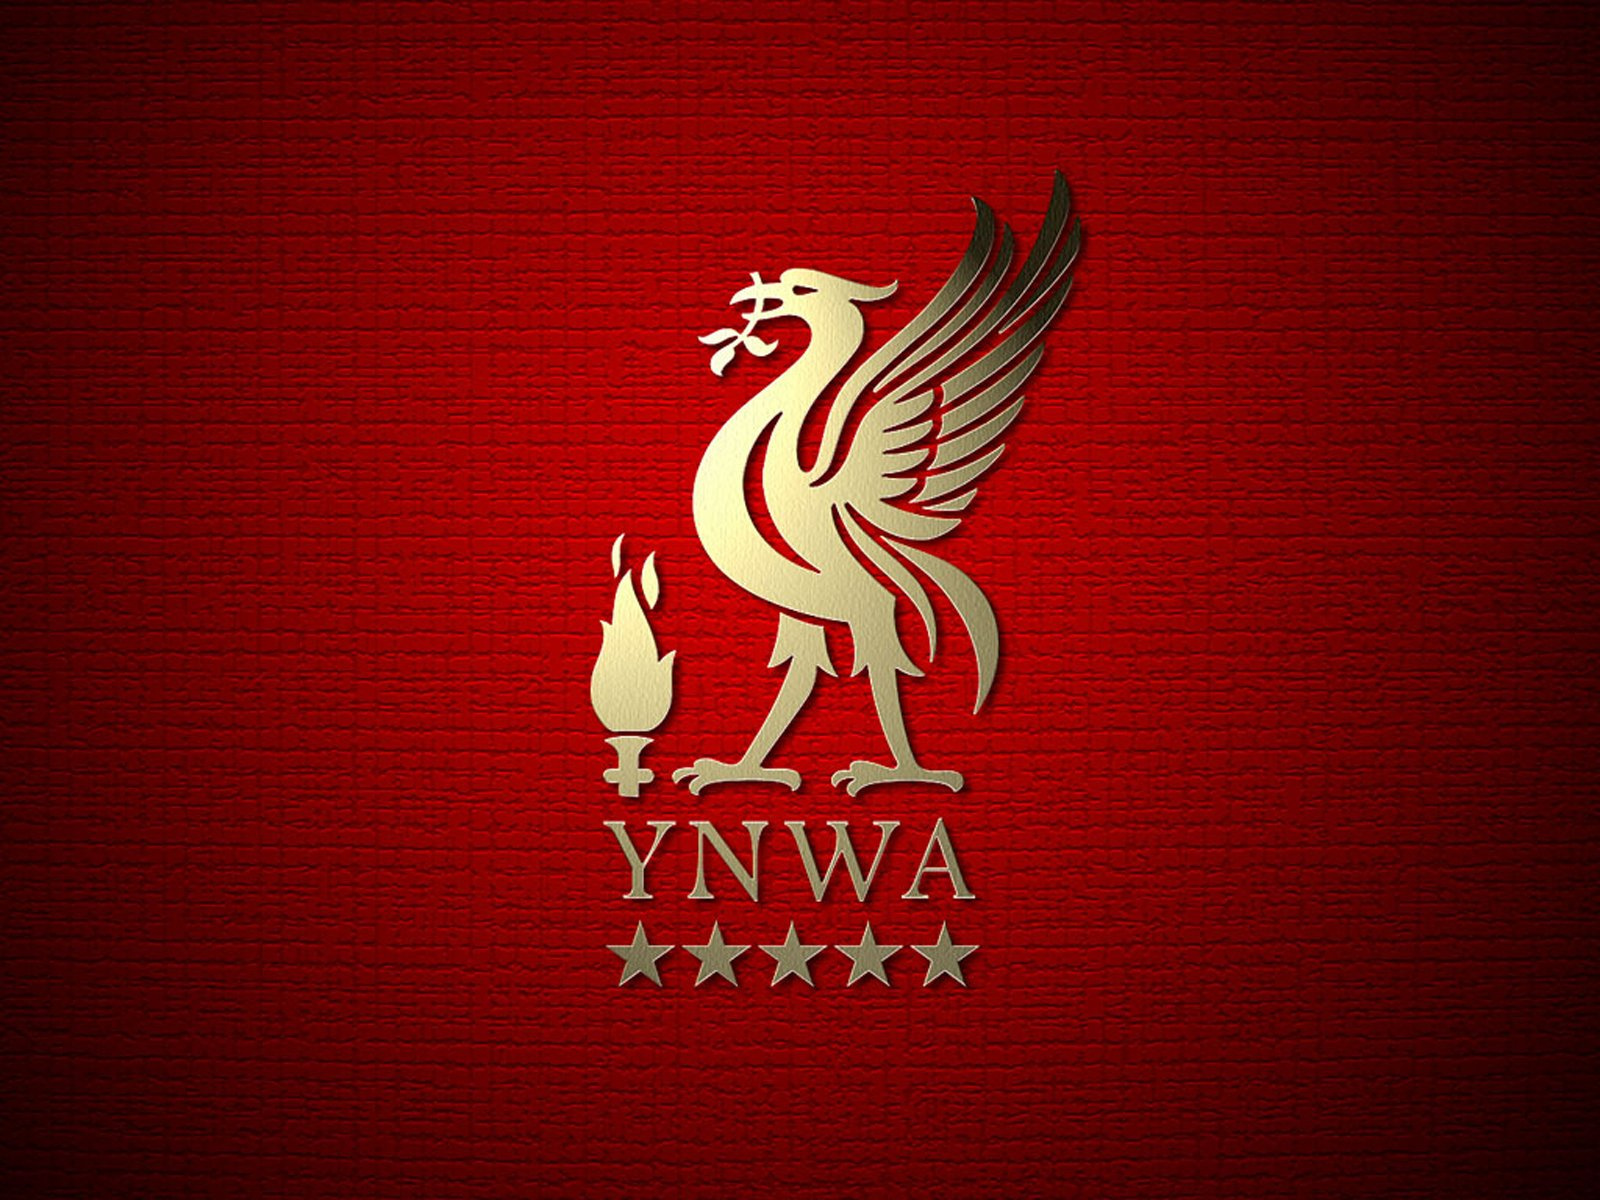 HQ YNWA Wallpaper   HQ Wallpapers 1600x1200